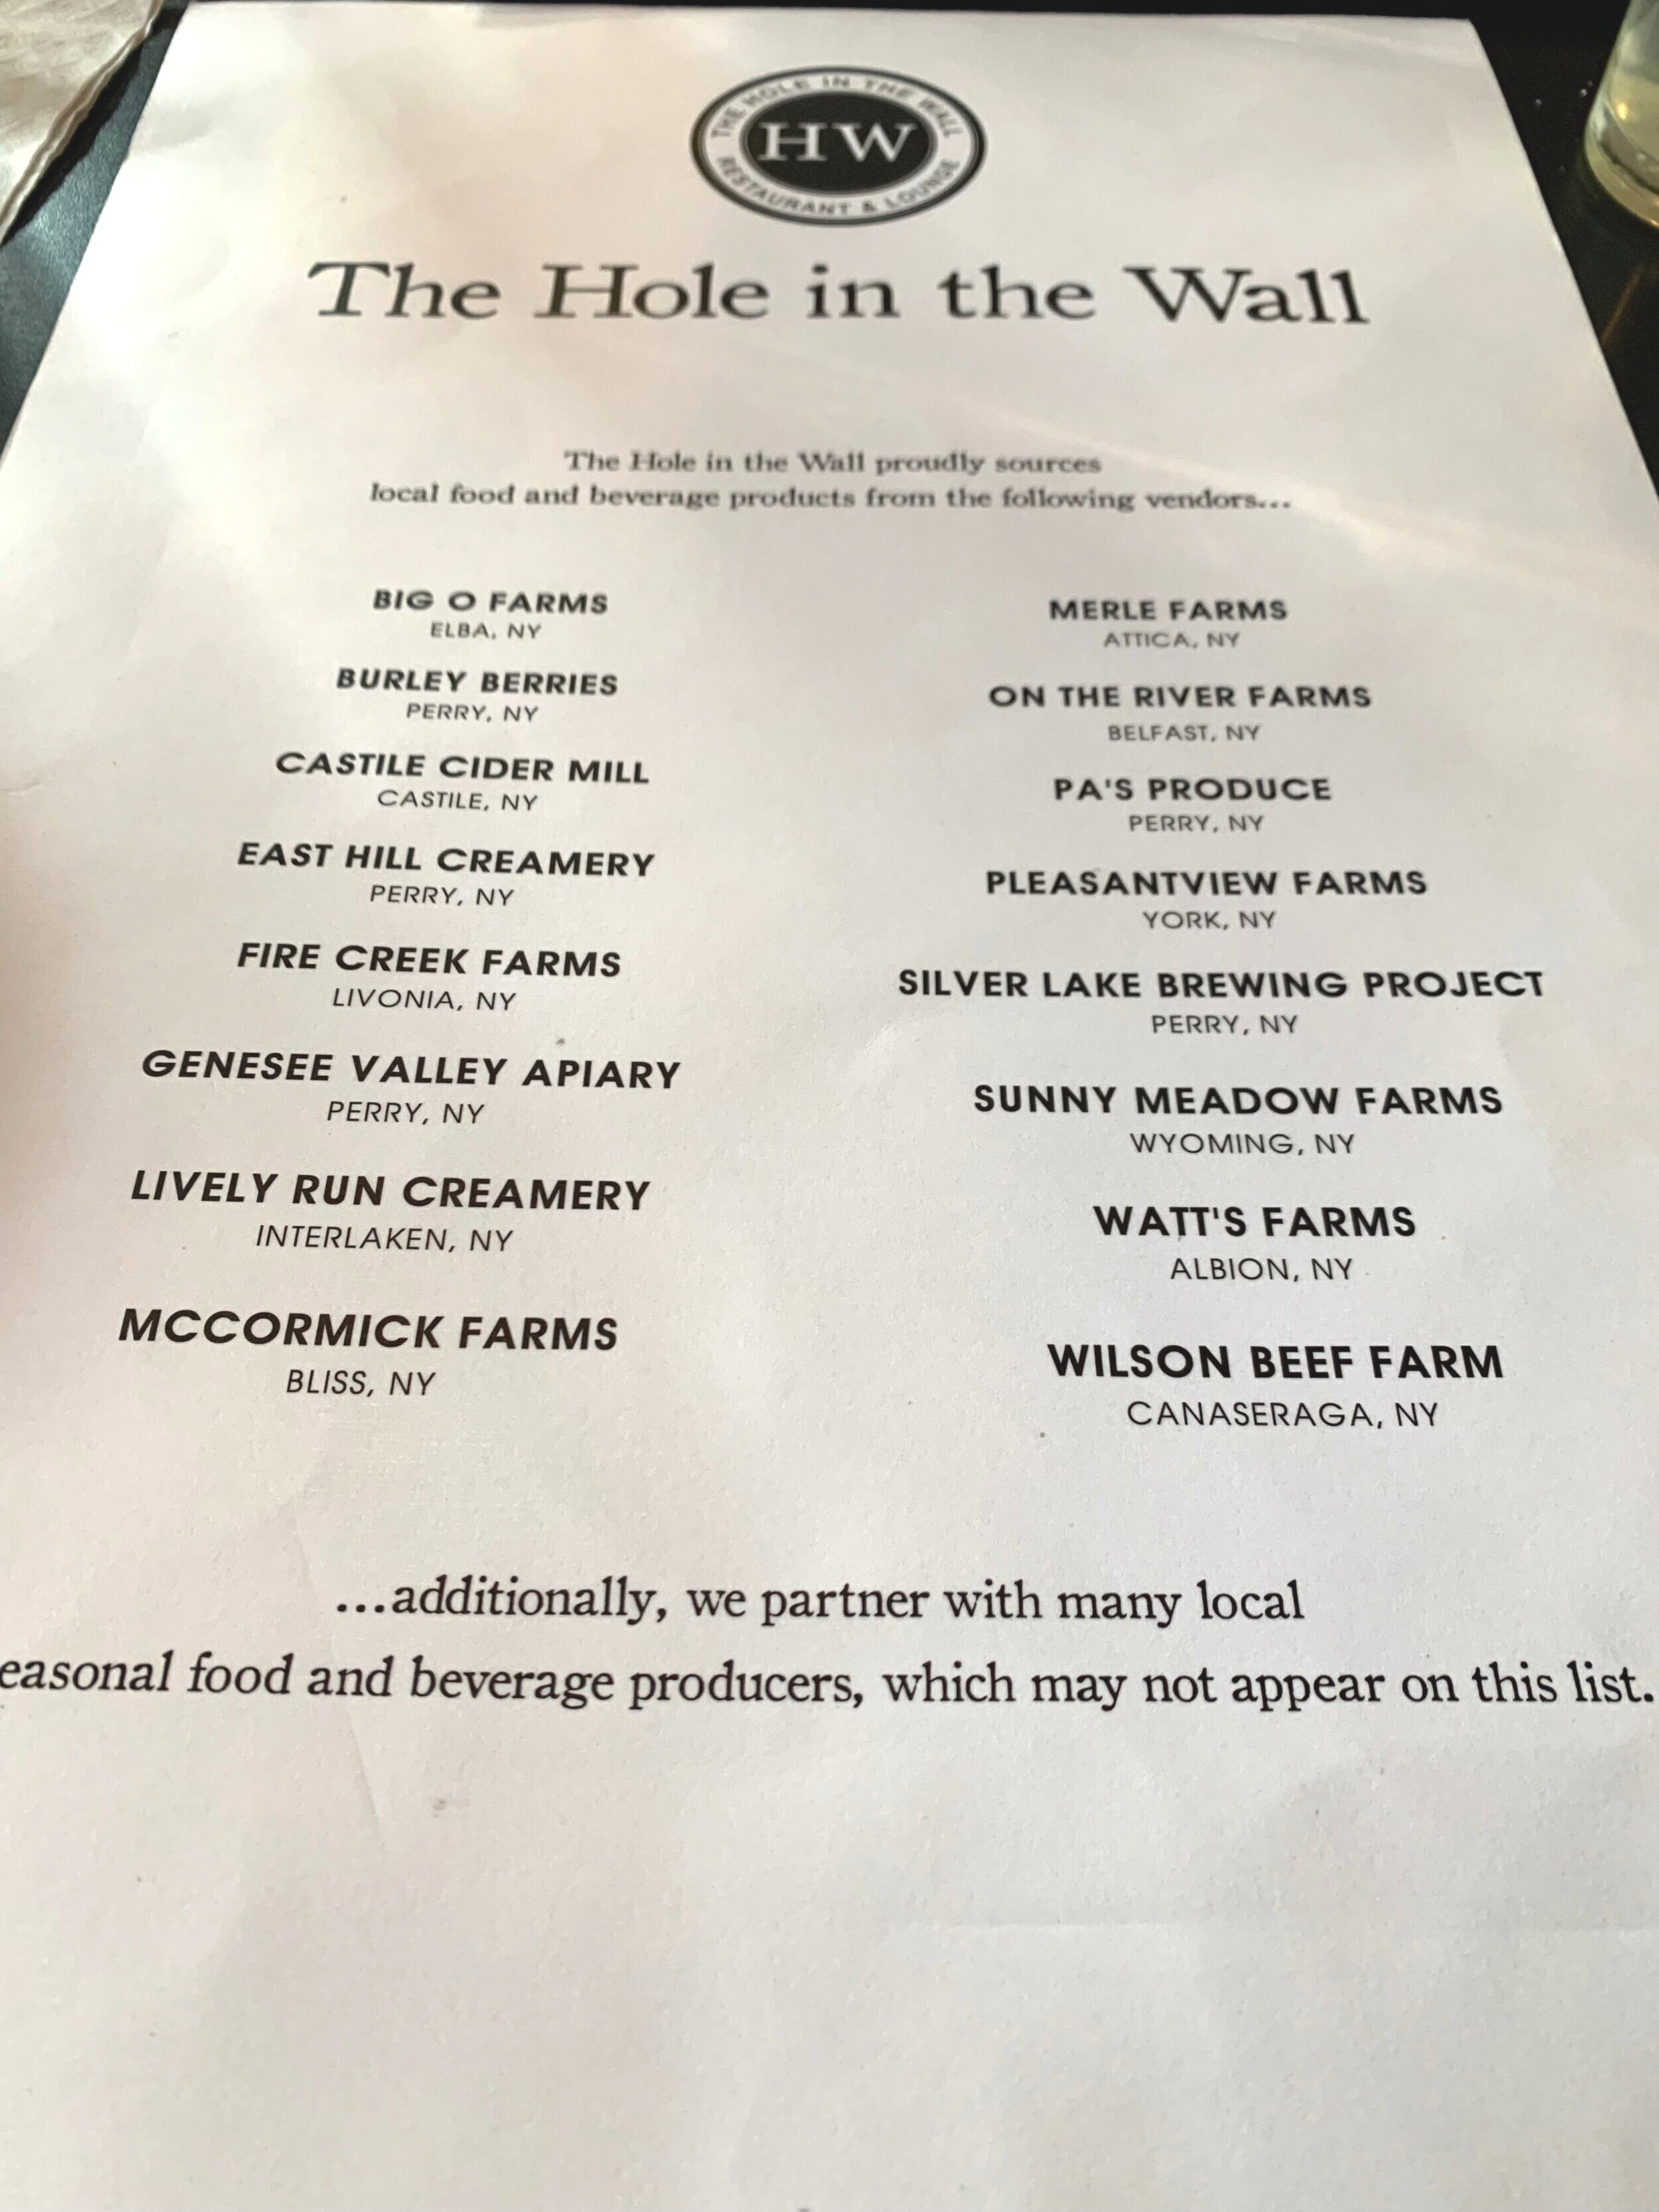 The Hole in the Wall Restaurant in Perry lists many local suppliers on their menu.